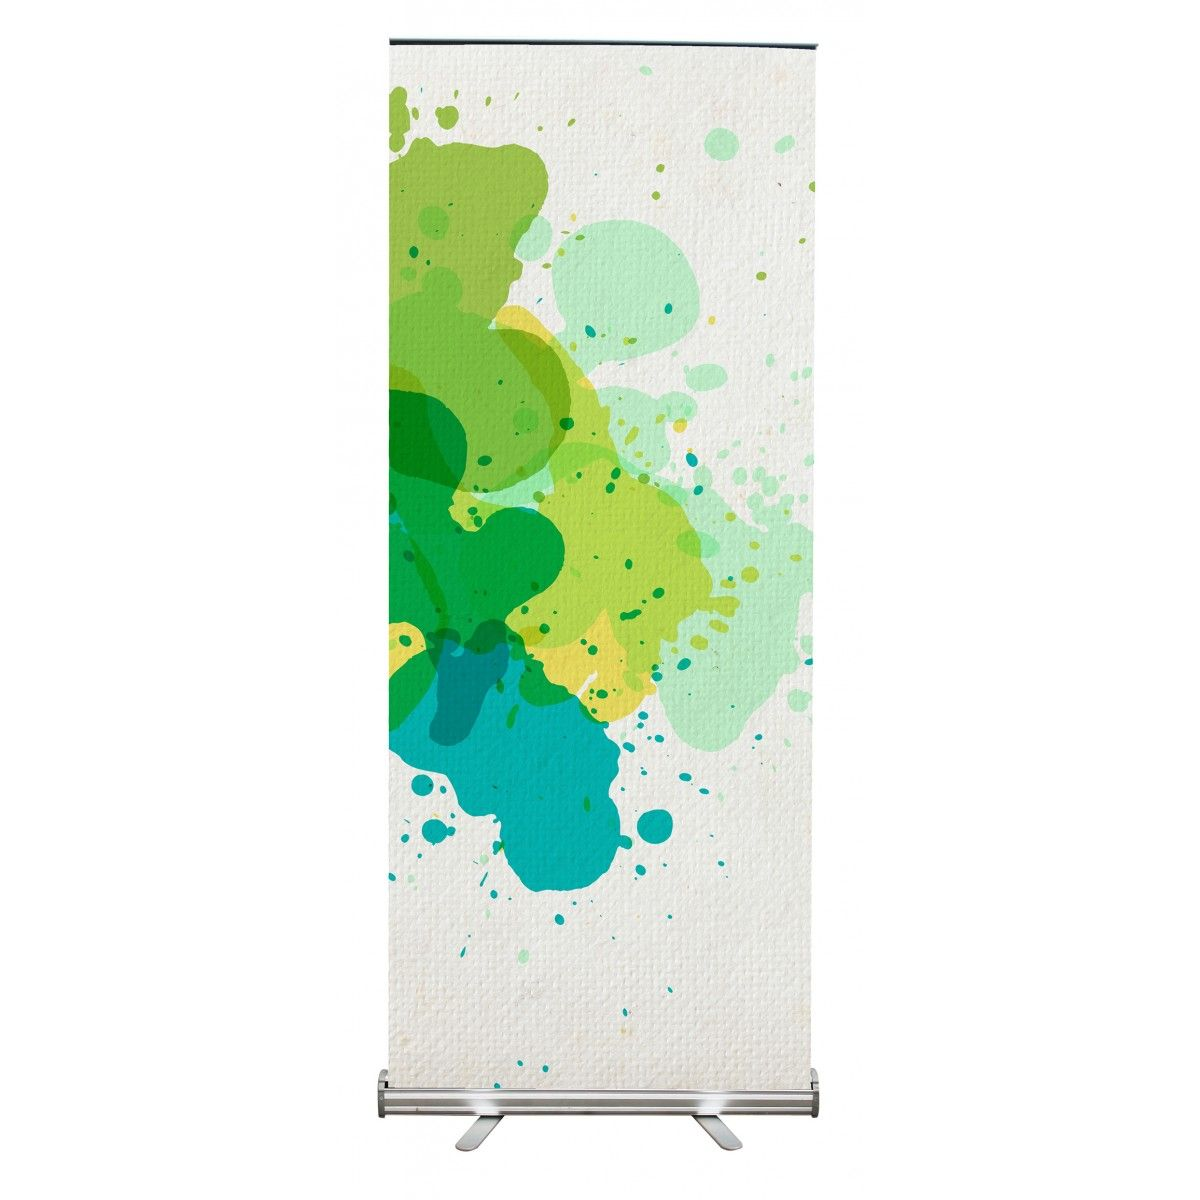 Retractable Banner Stand X Retractable Banners Stands - Retractable banner template